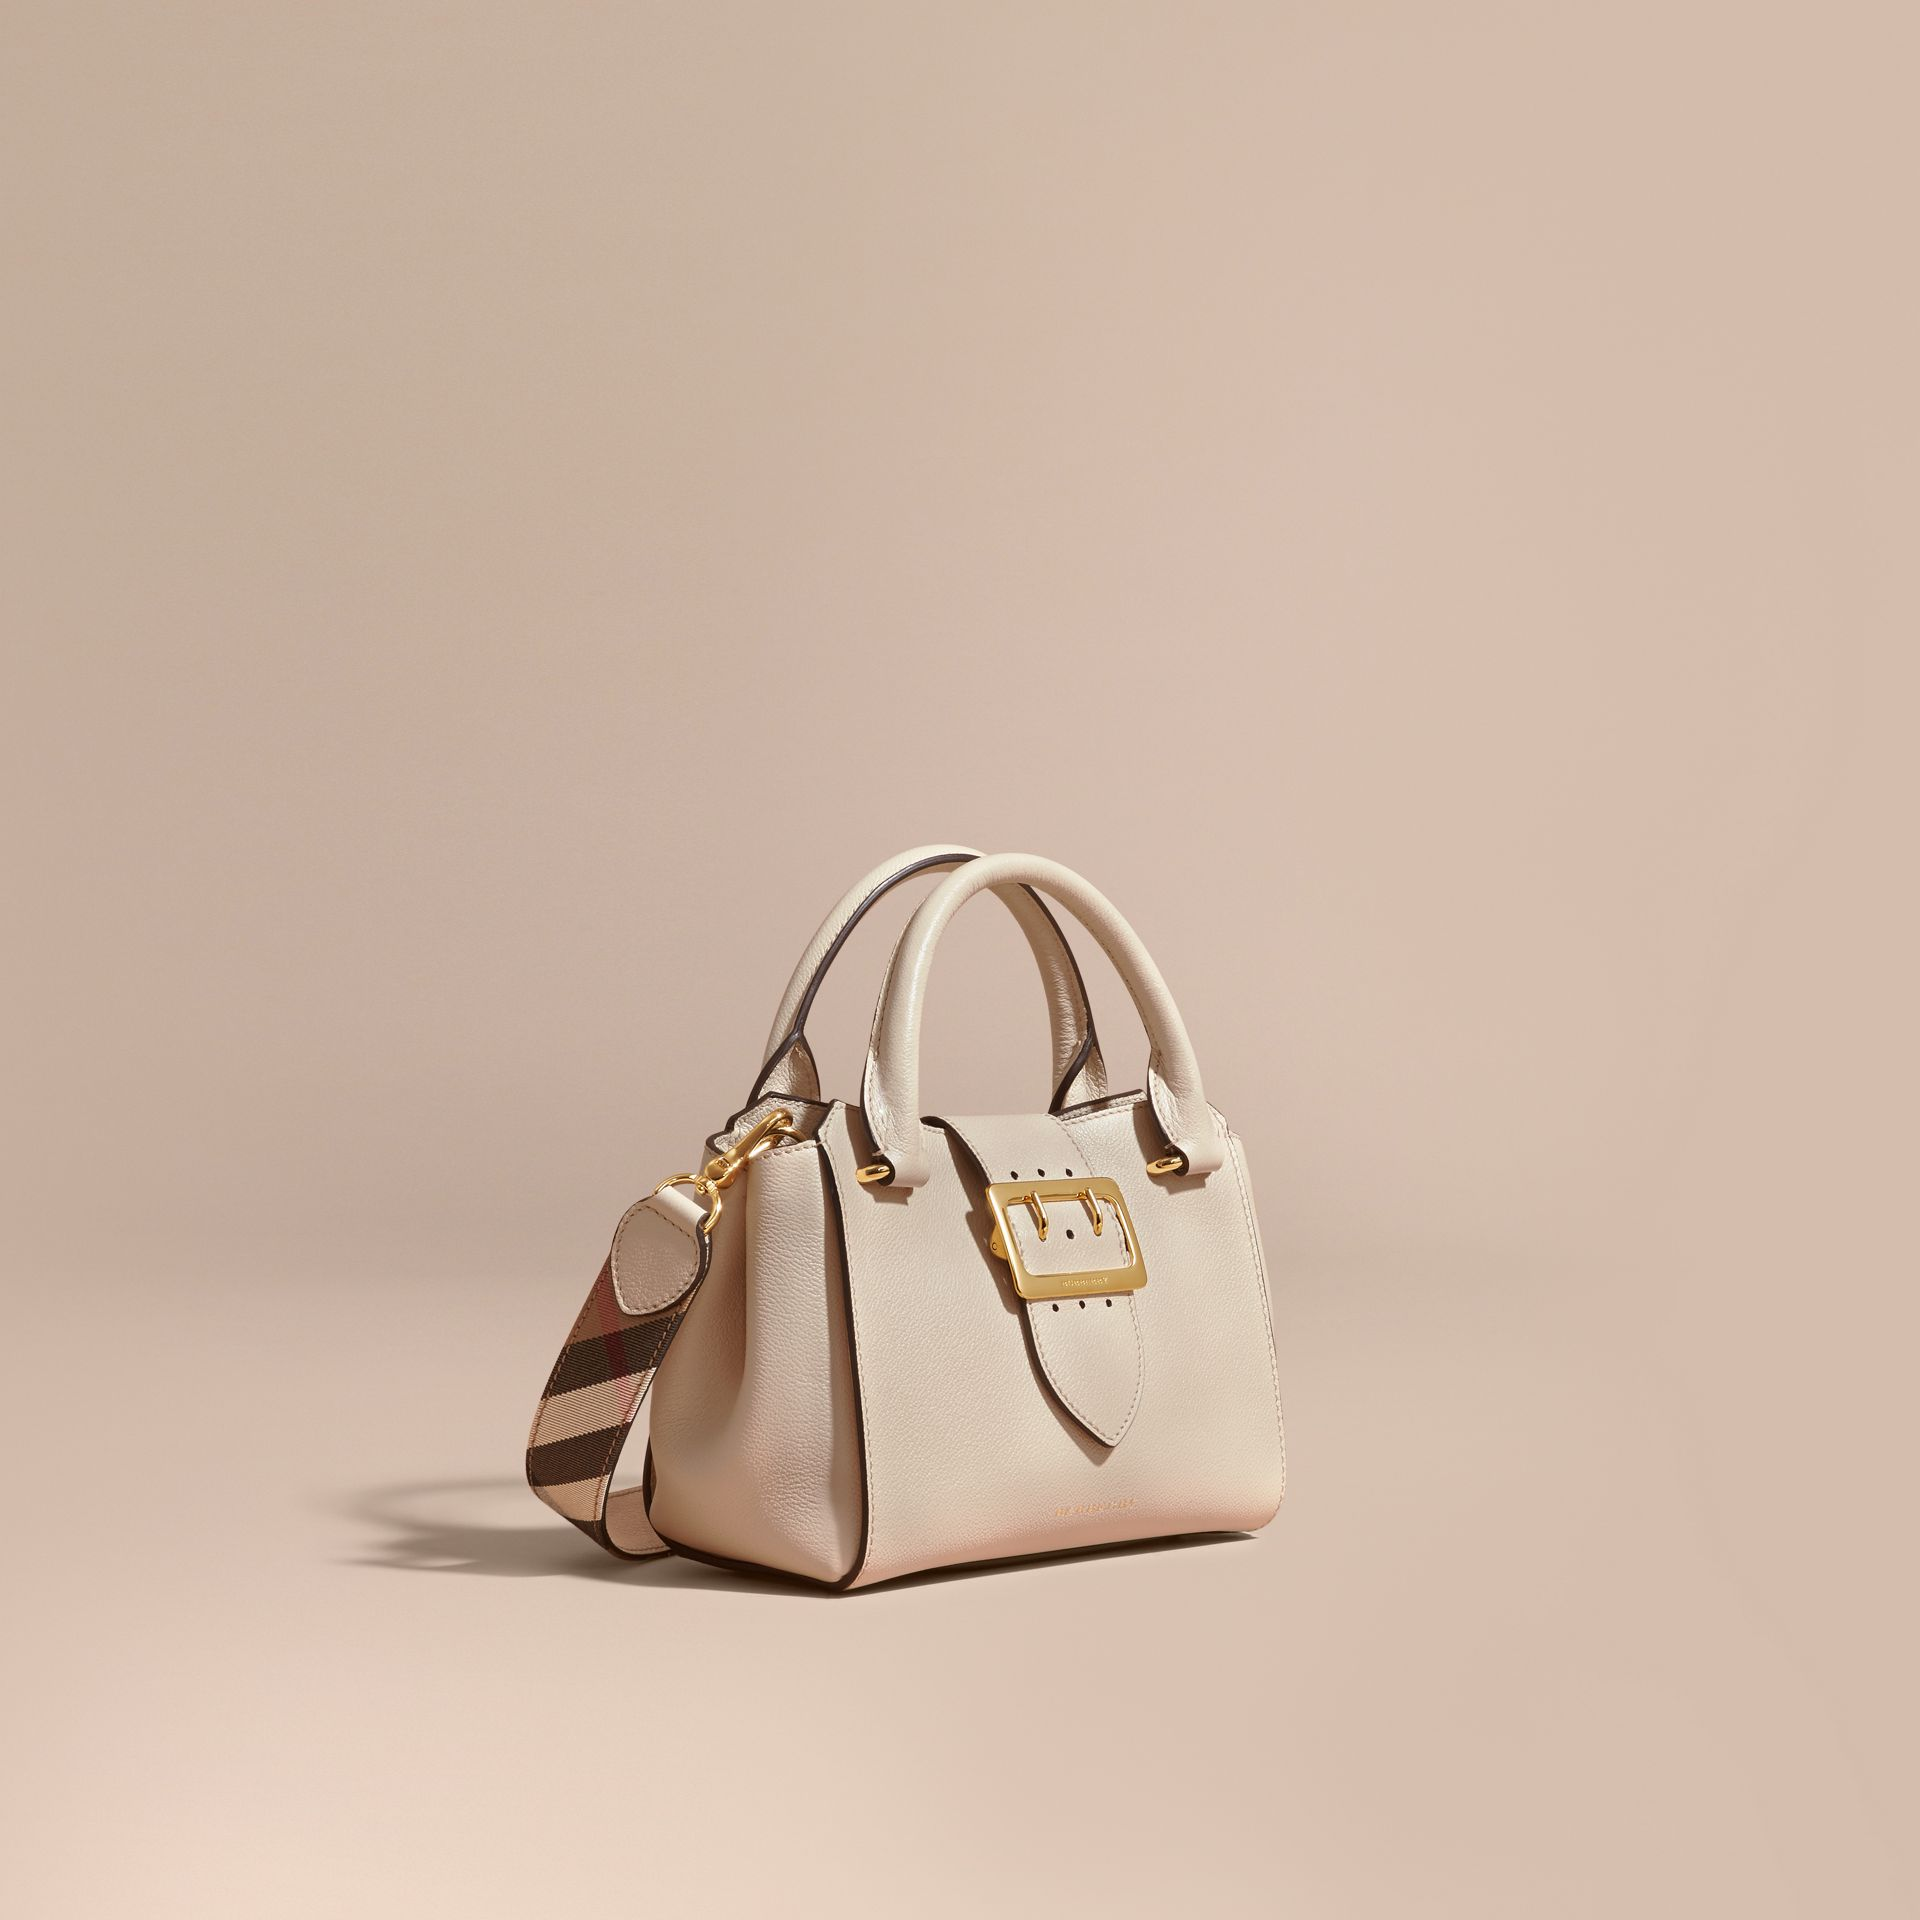 Limestone The Small Buckle Tote in Grainy Leather Limestone - gallery image 1